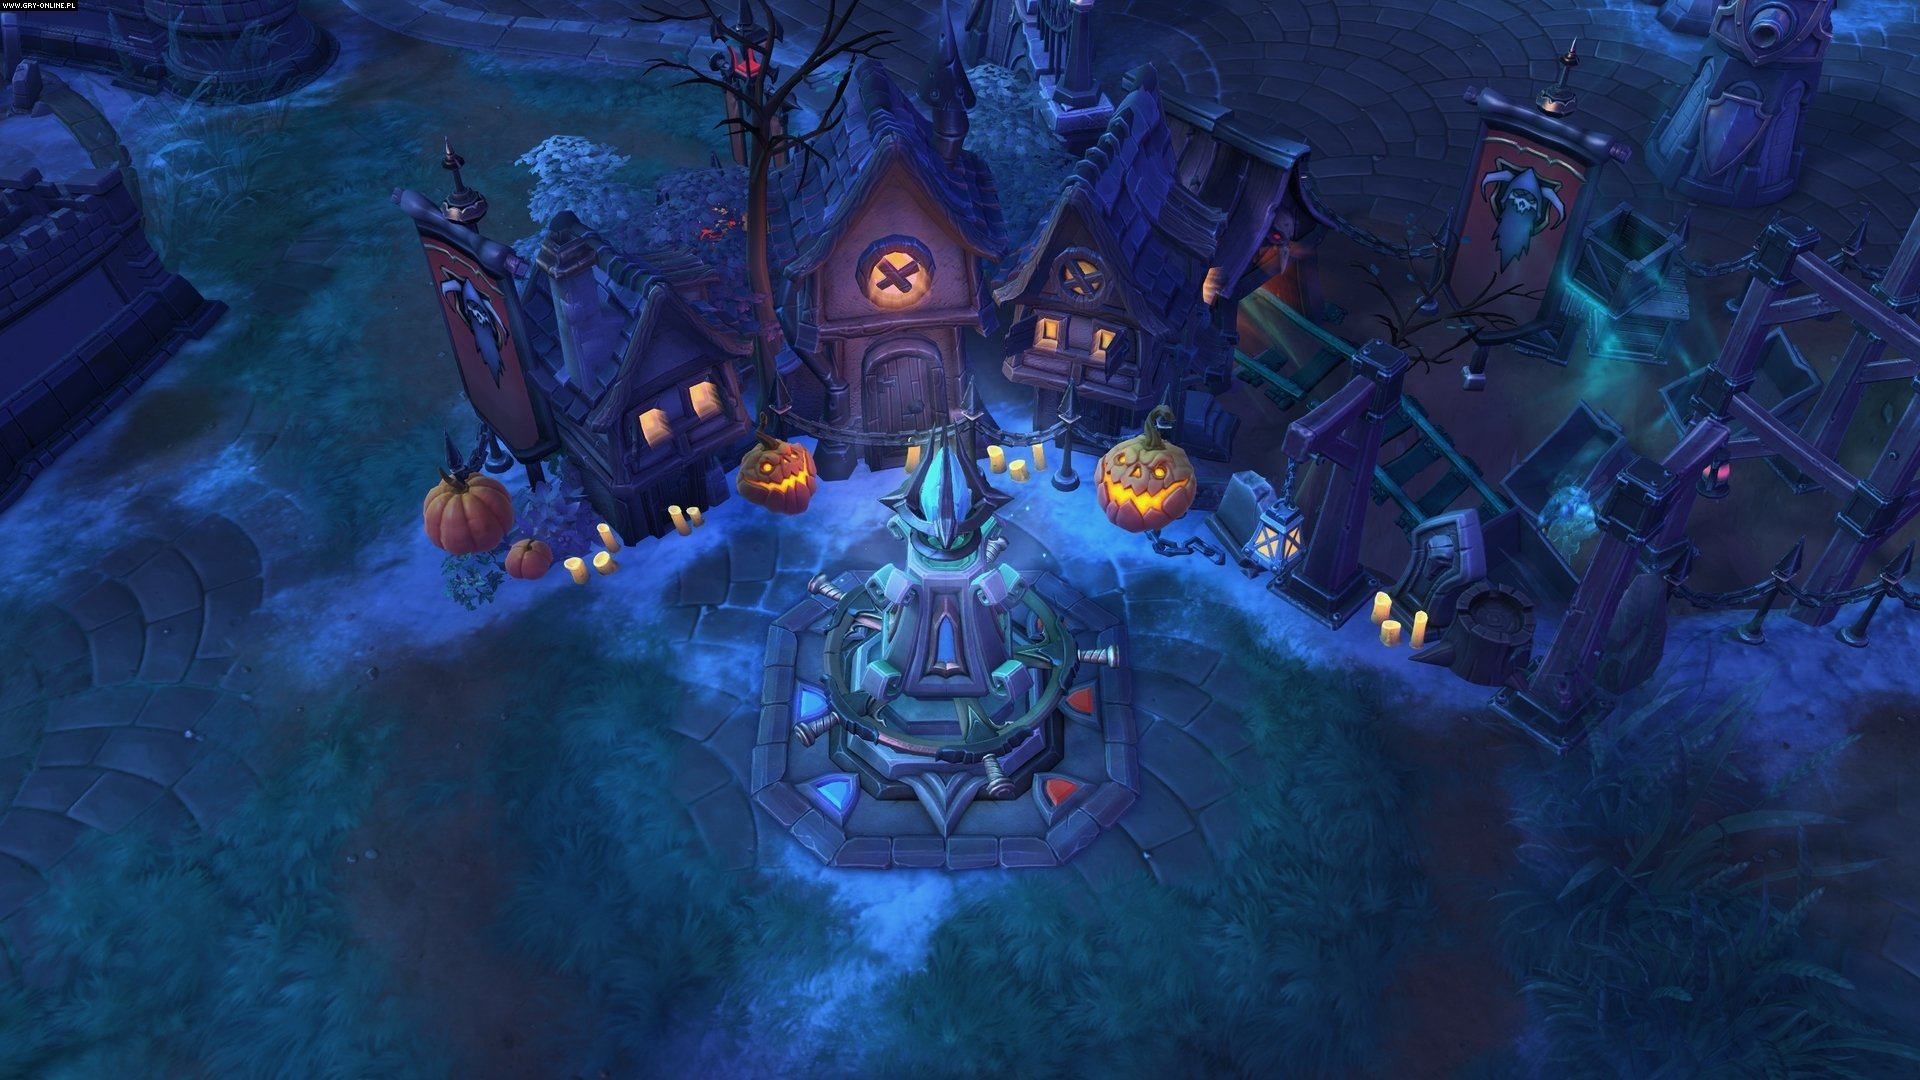 Heroes of the Storm image #1